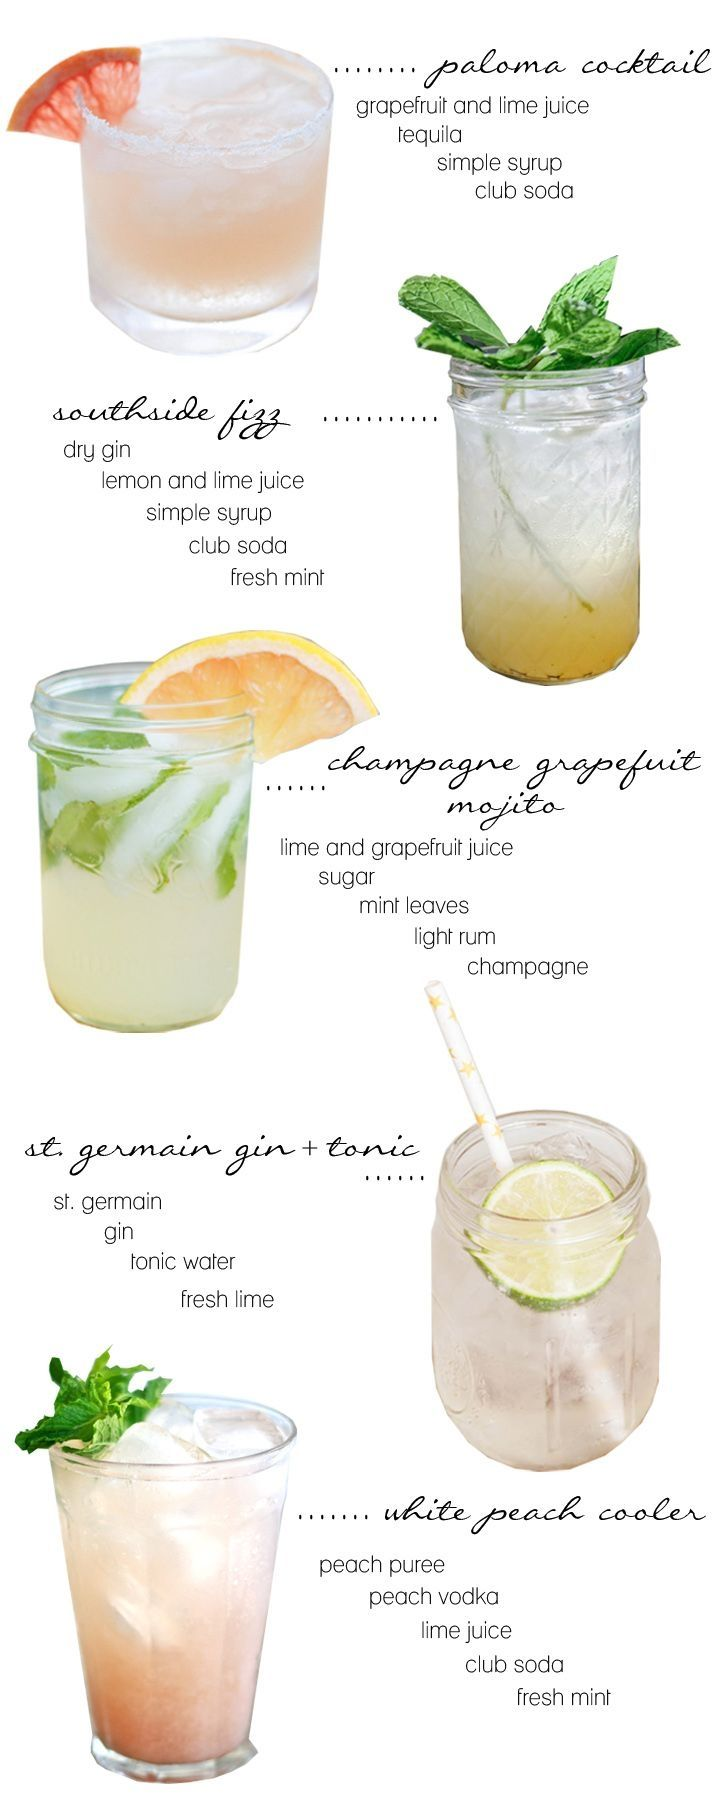 summer cocktails: Paloma Cocktail, Southside Fizz, Champagne Grapefruit Mojito, St Germain Gin and Tonic, White Peach Cooler